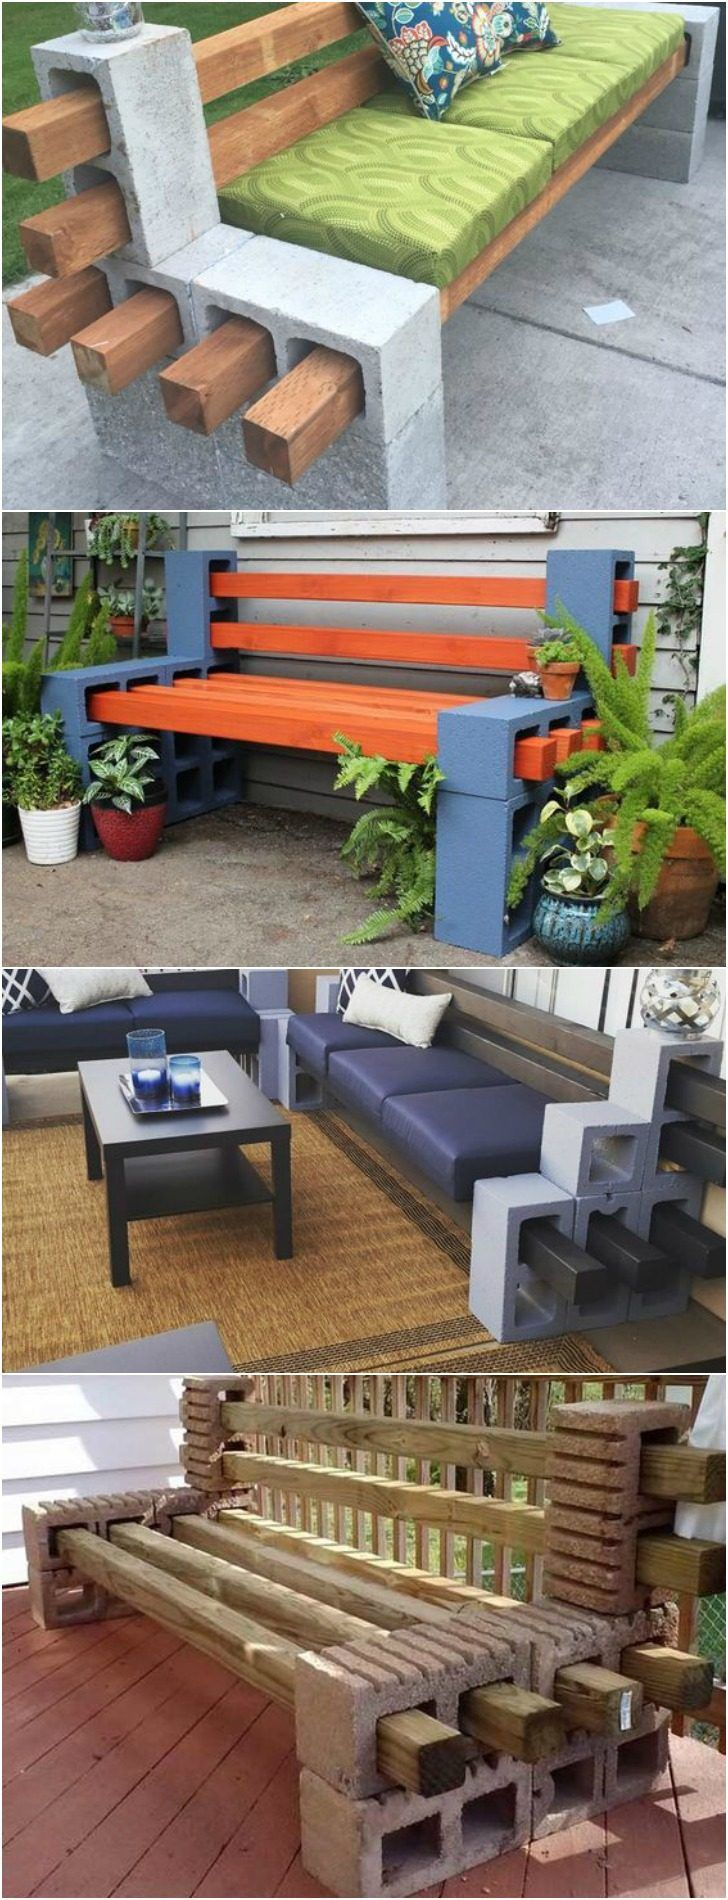 7 best cinder block ideas images on pinterest diy backyard